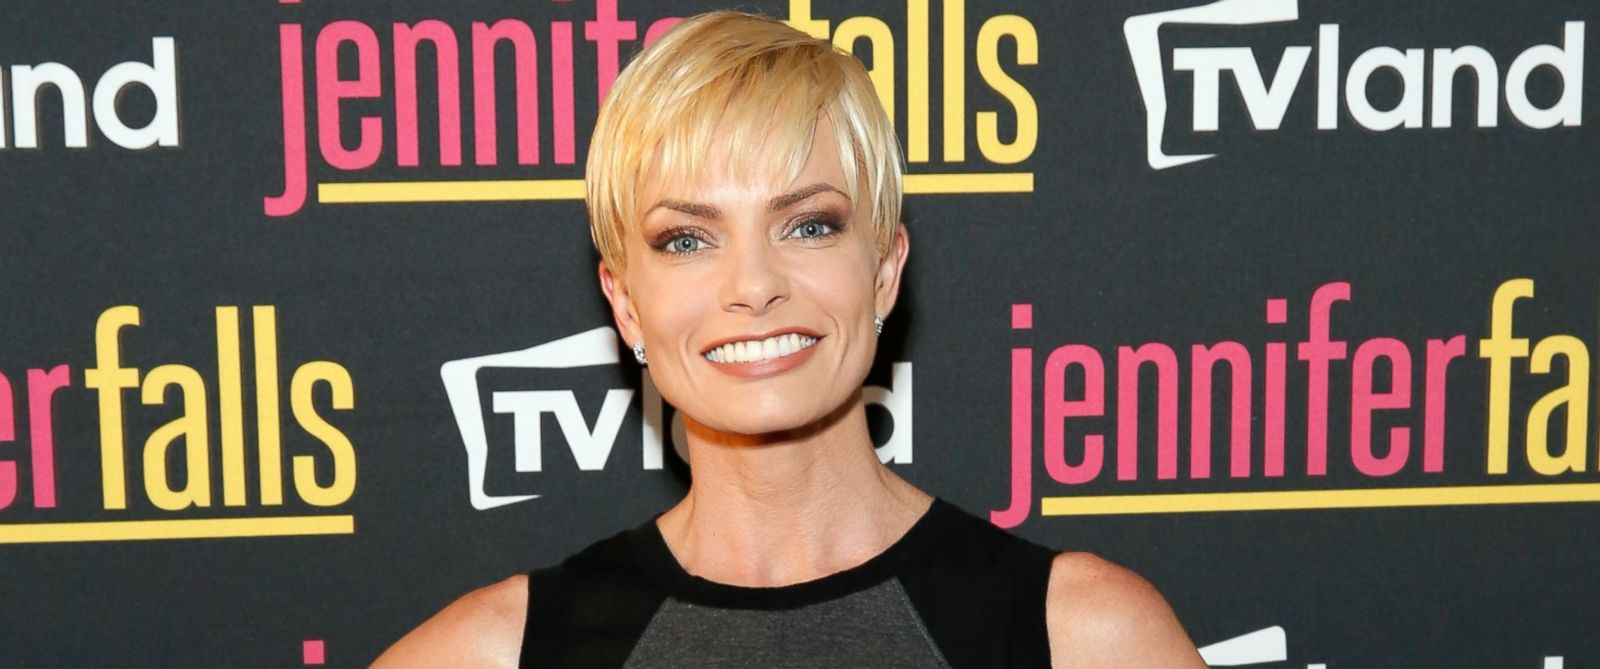 """PHOTO: Jaime Pressly at TV Lands """"Jennifer Falls"""" premiere party at Jimmy At The James Hotel in New York City, June 2, 2014."""